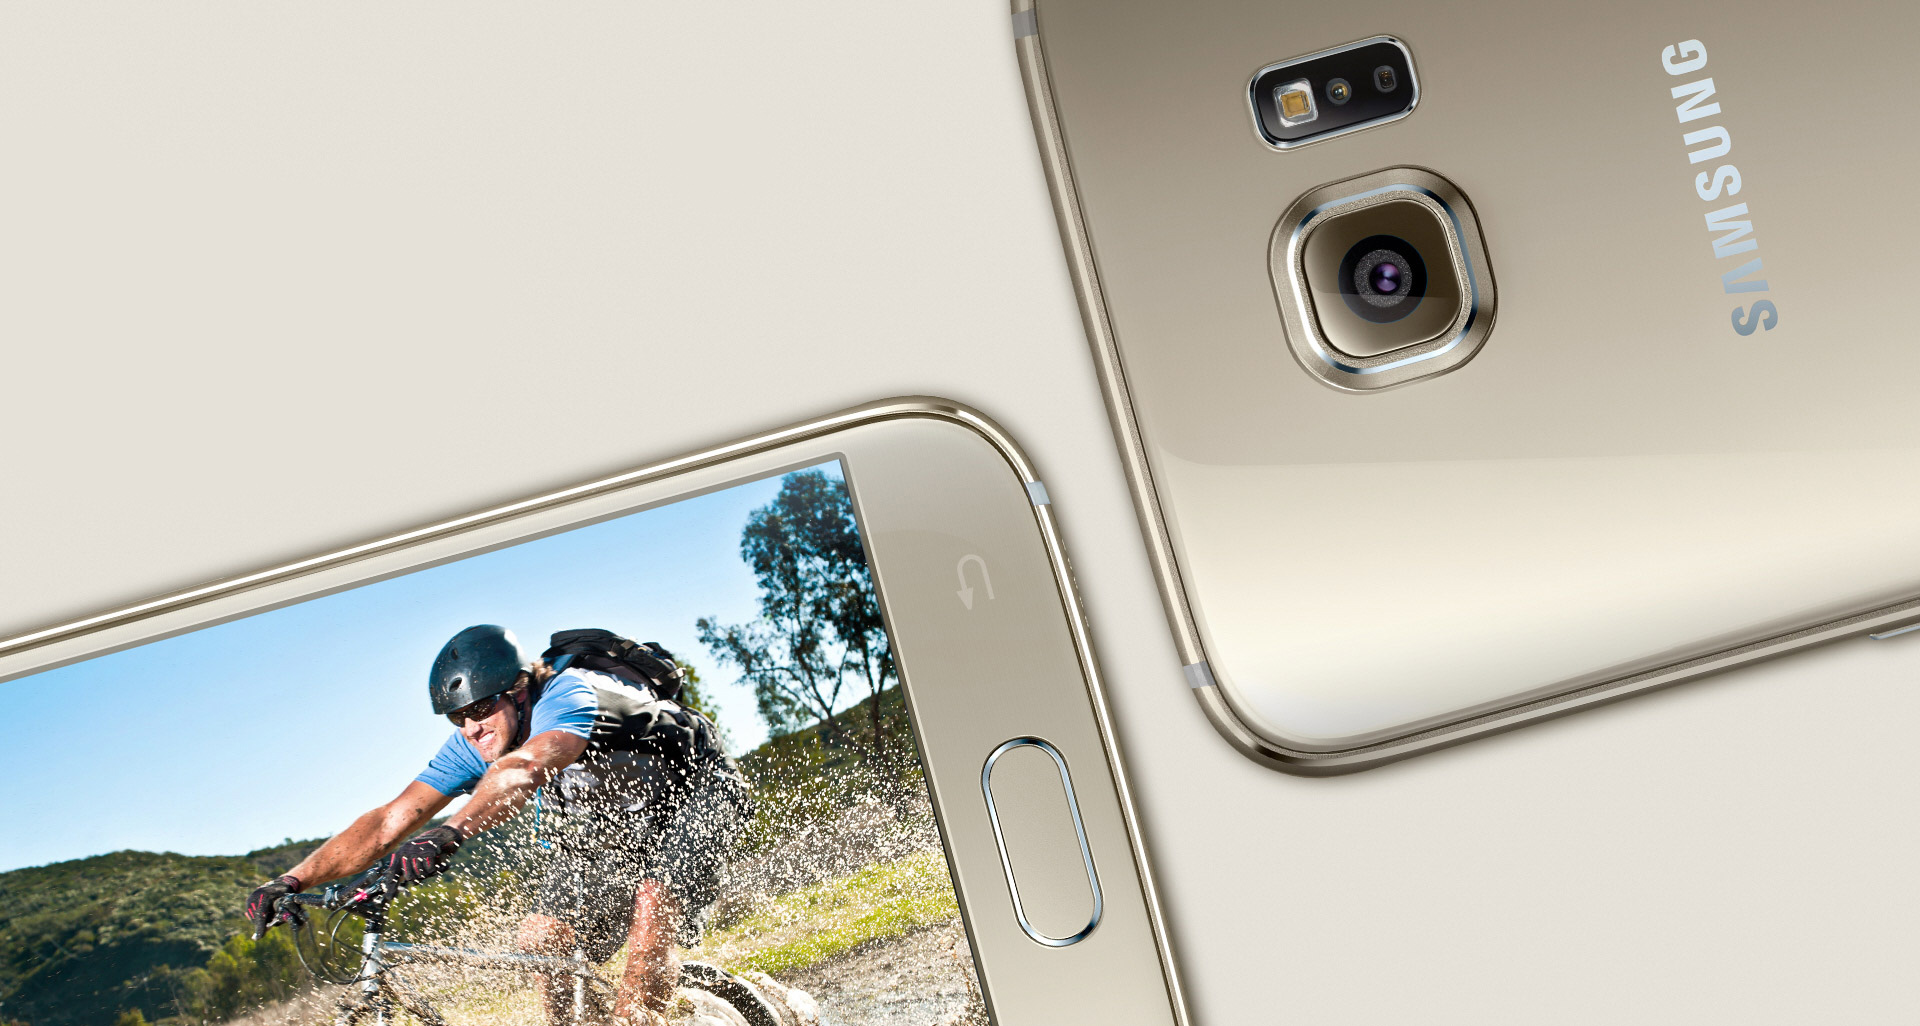 Galaxy-s7-camera-rumors